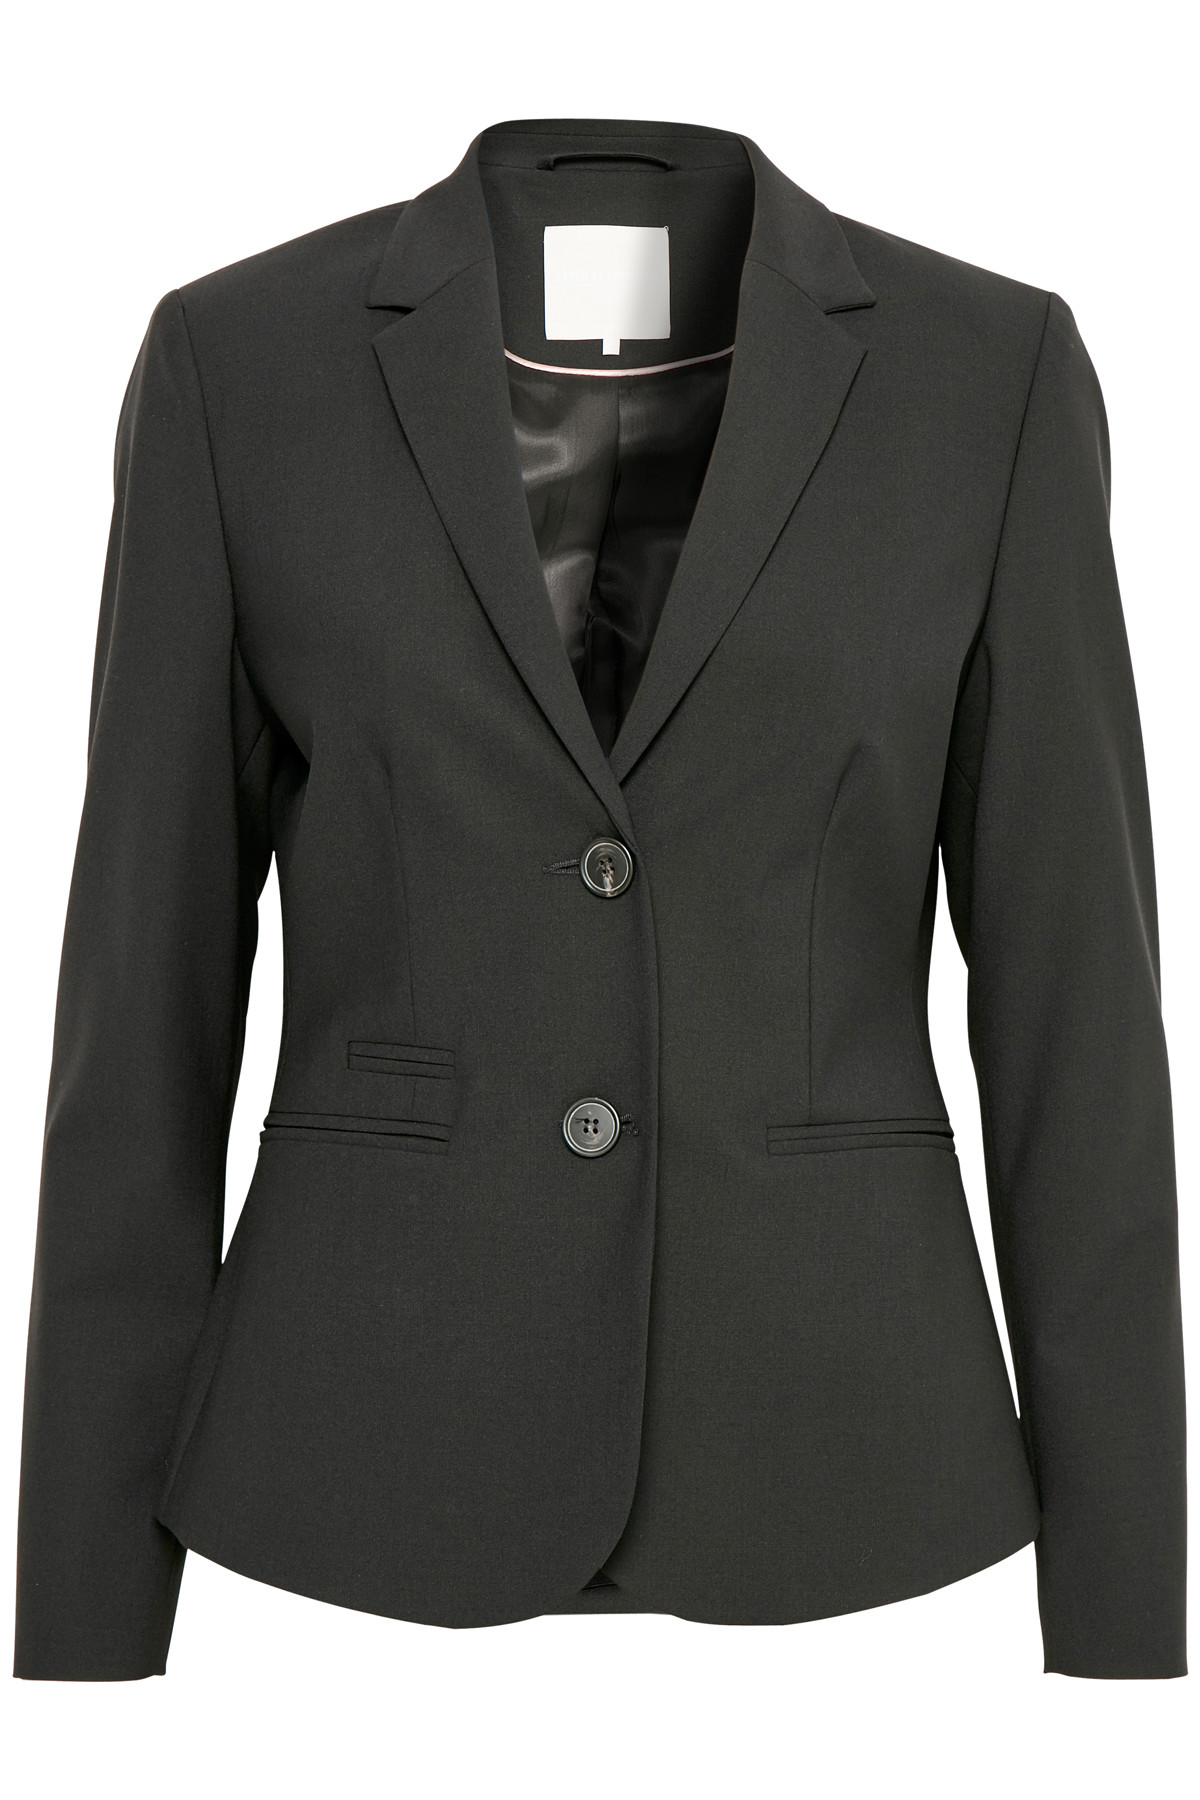 Image of   KAREN BY SIMONSEN SYDNEY BLAZER 10102001 (Black 40999, 38)